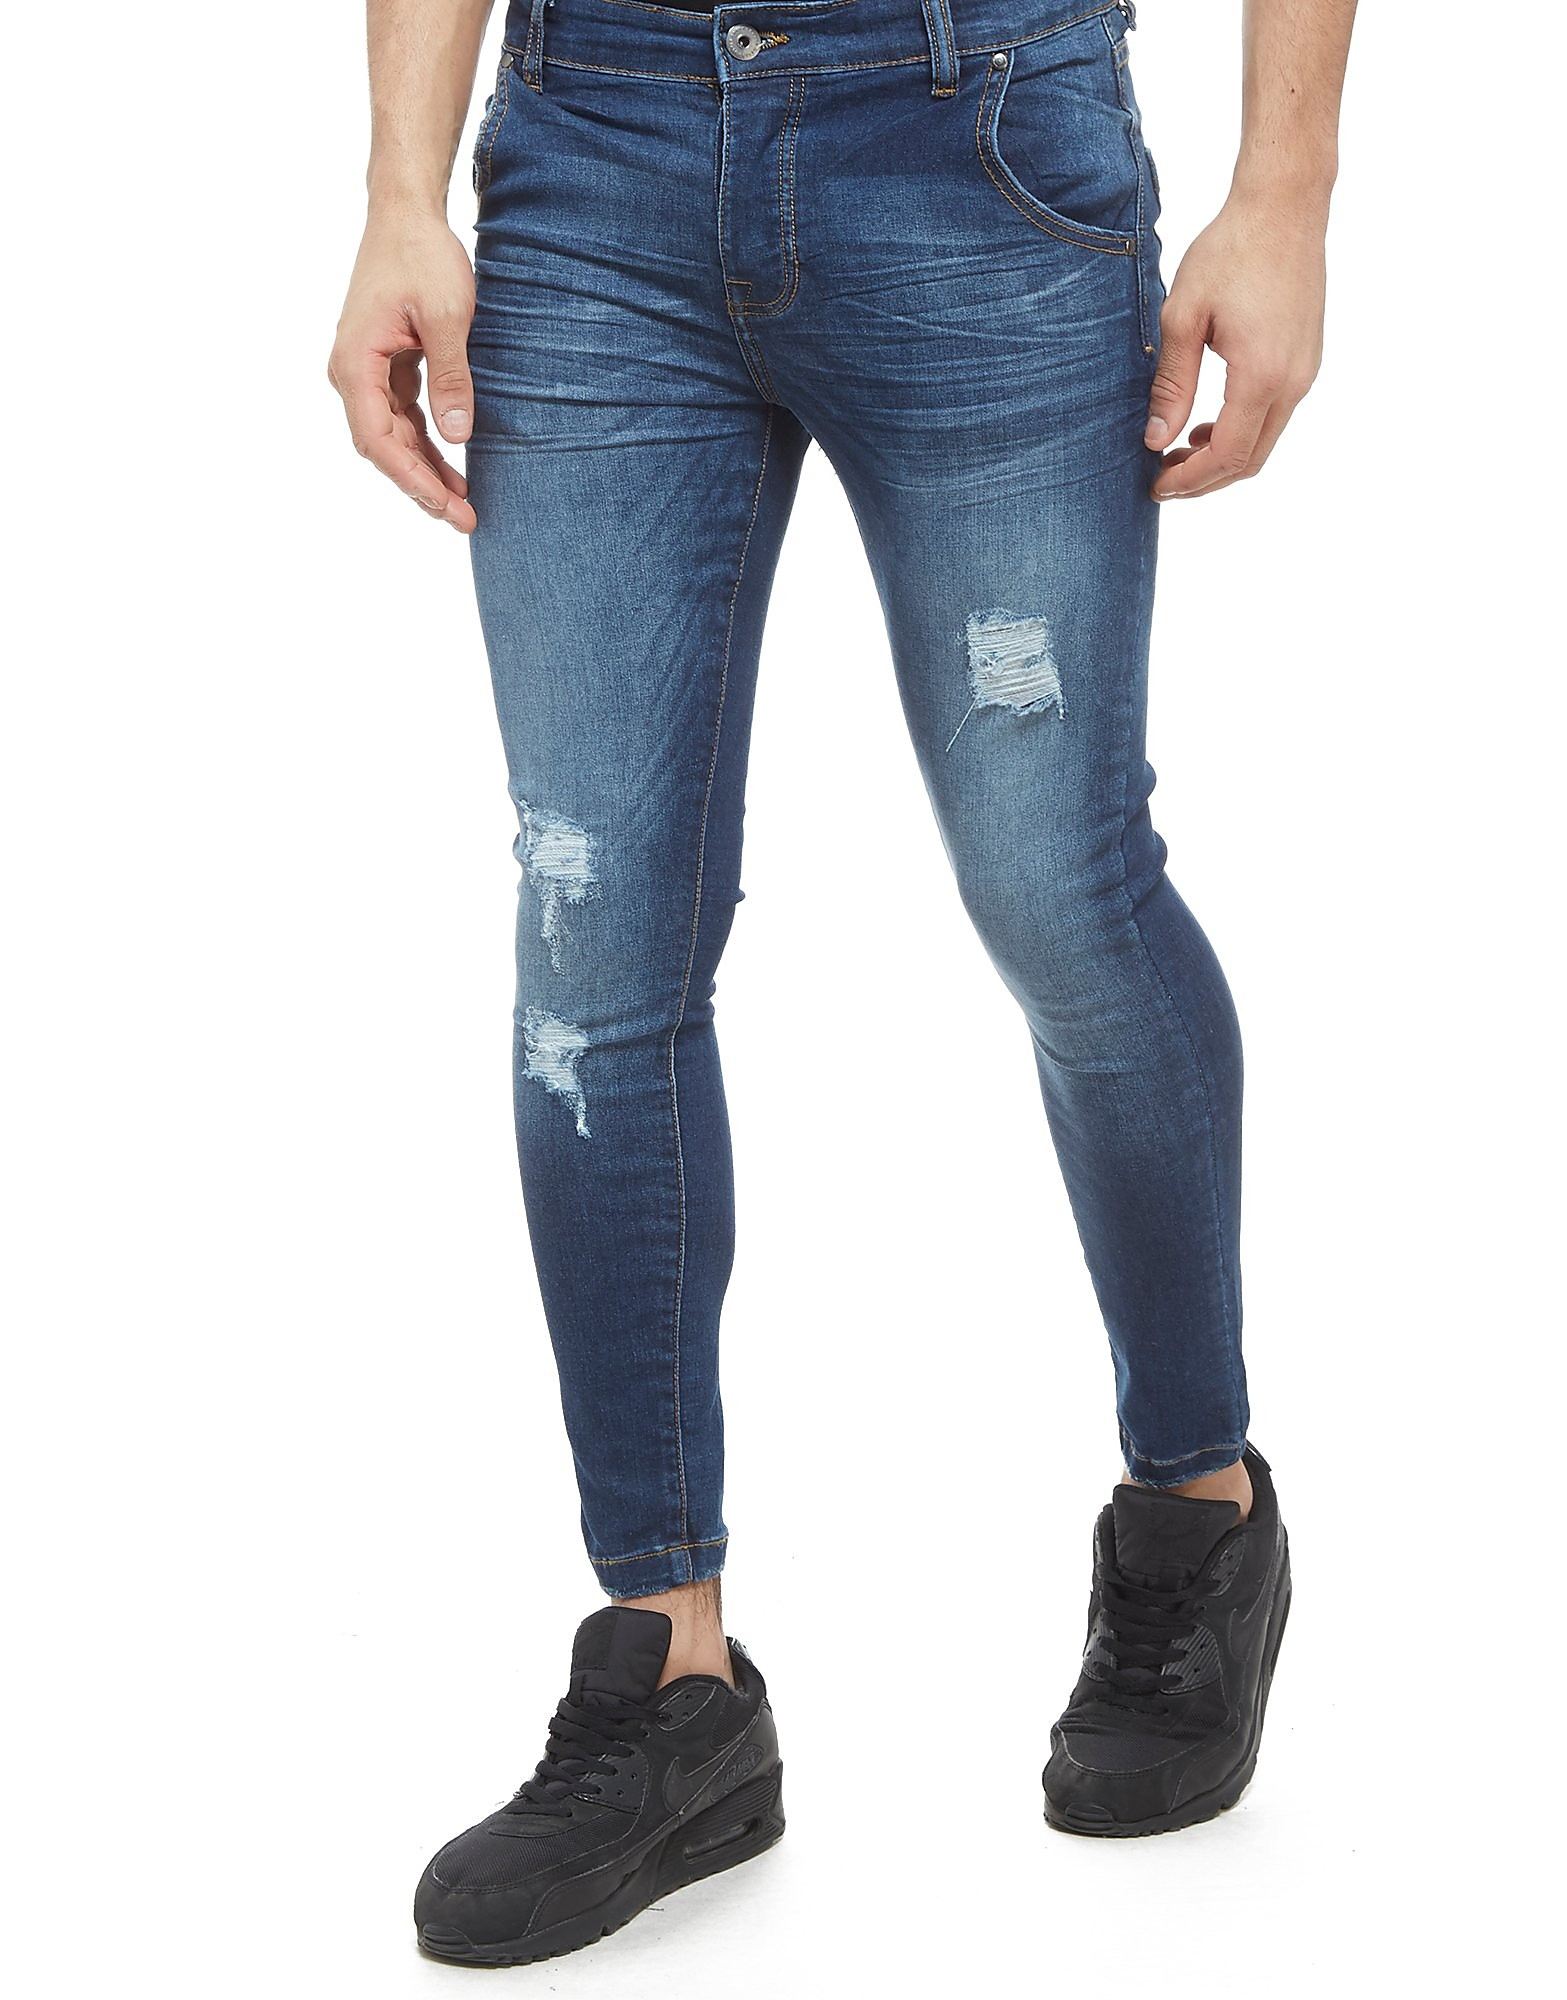 Nanny State Jeans Super Skinny Mid Wash